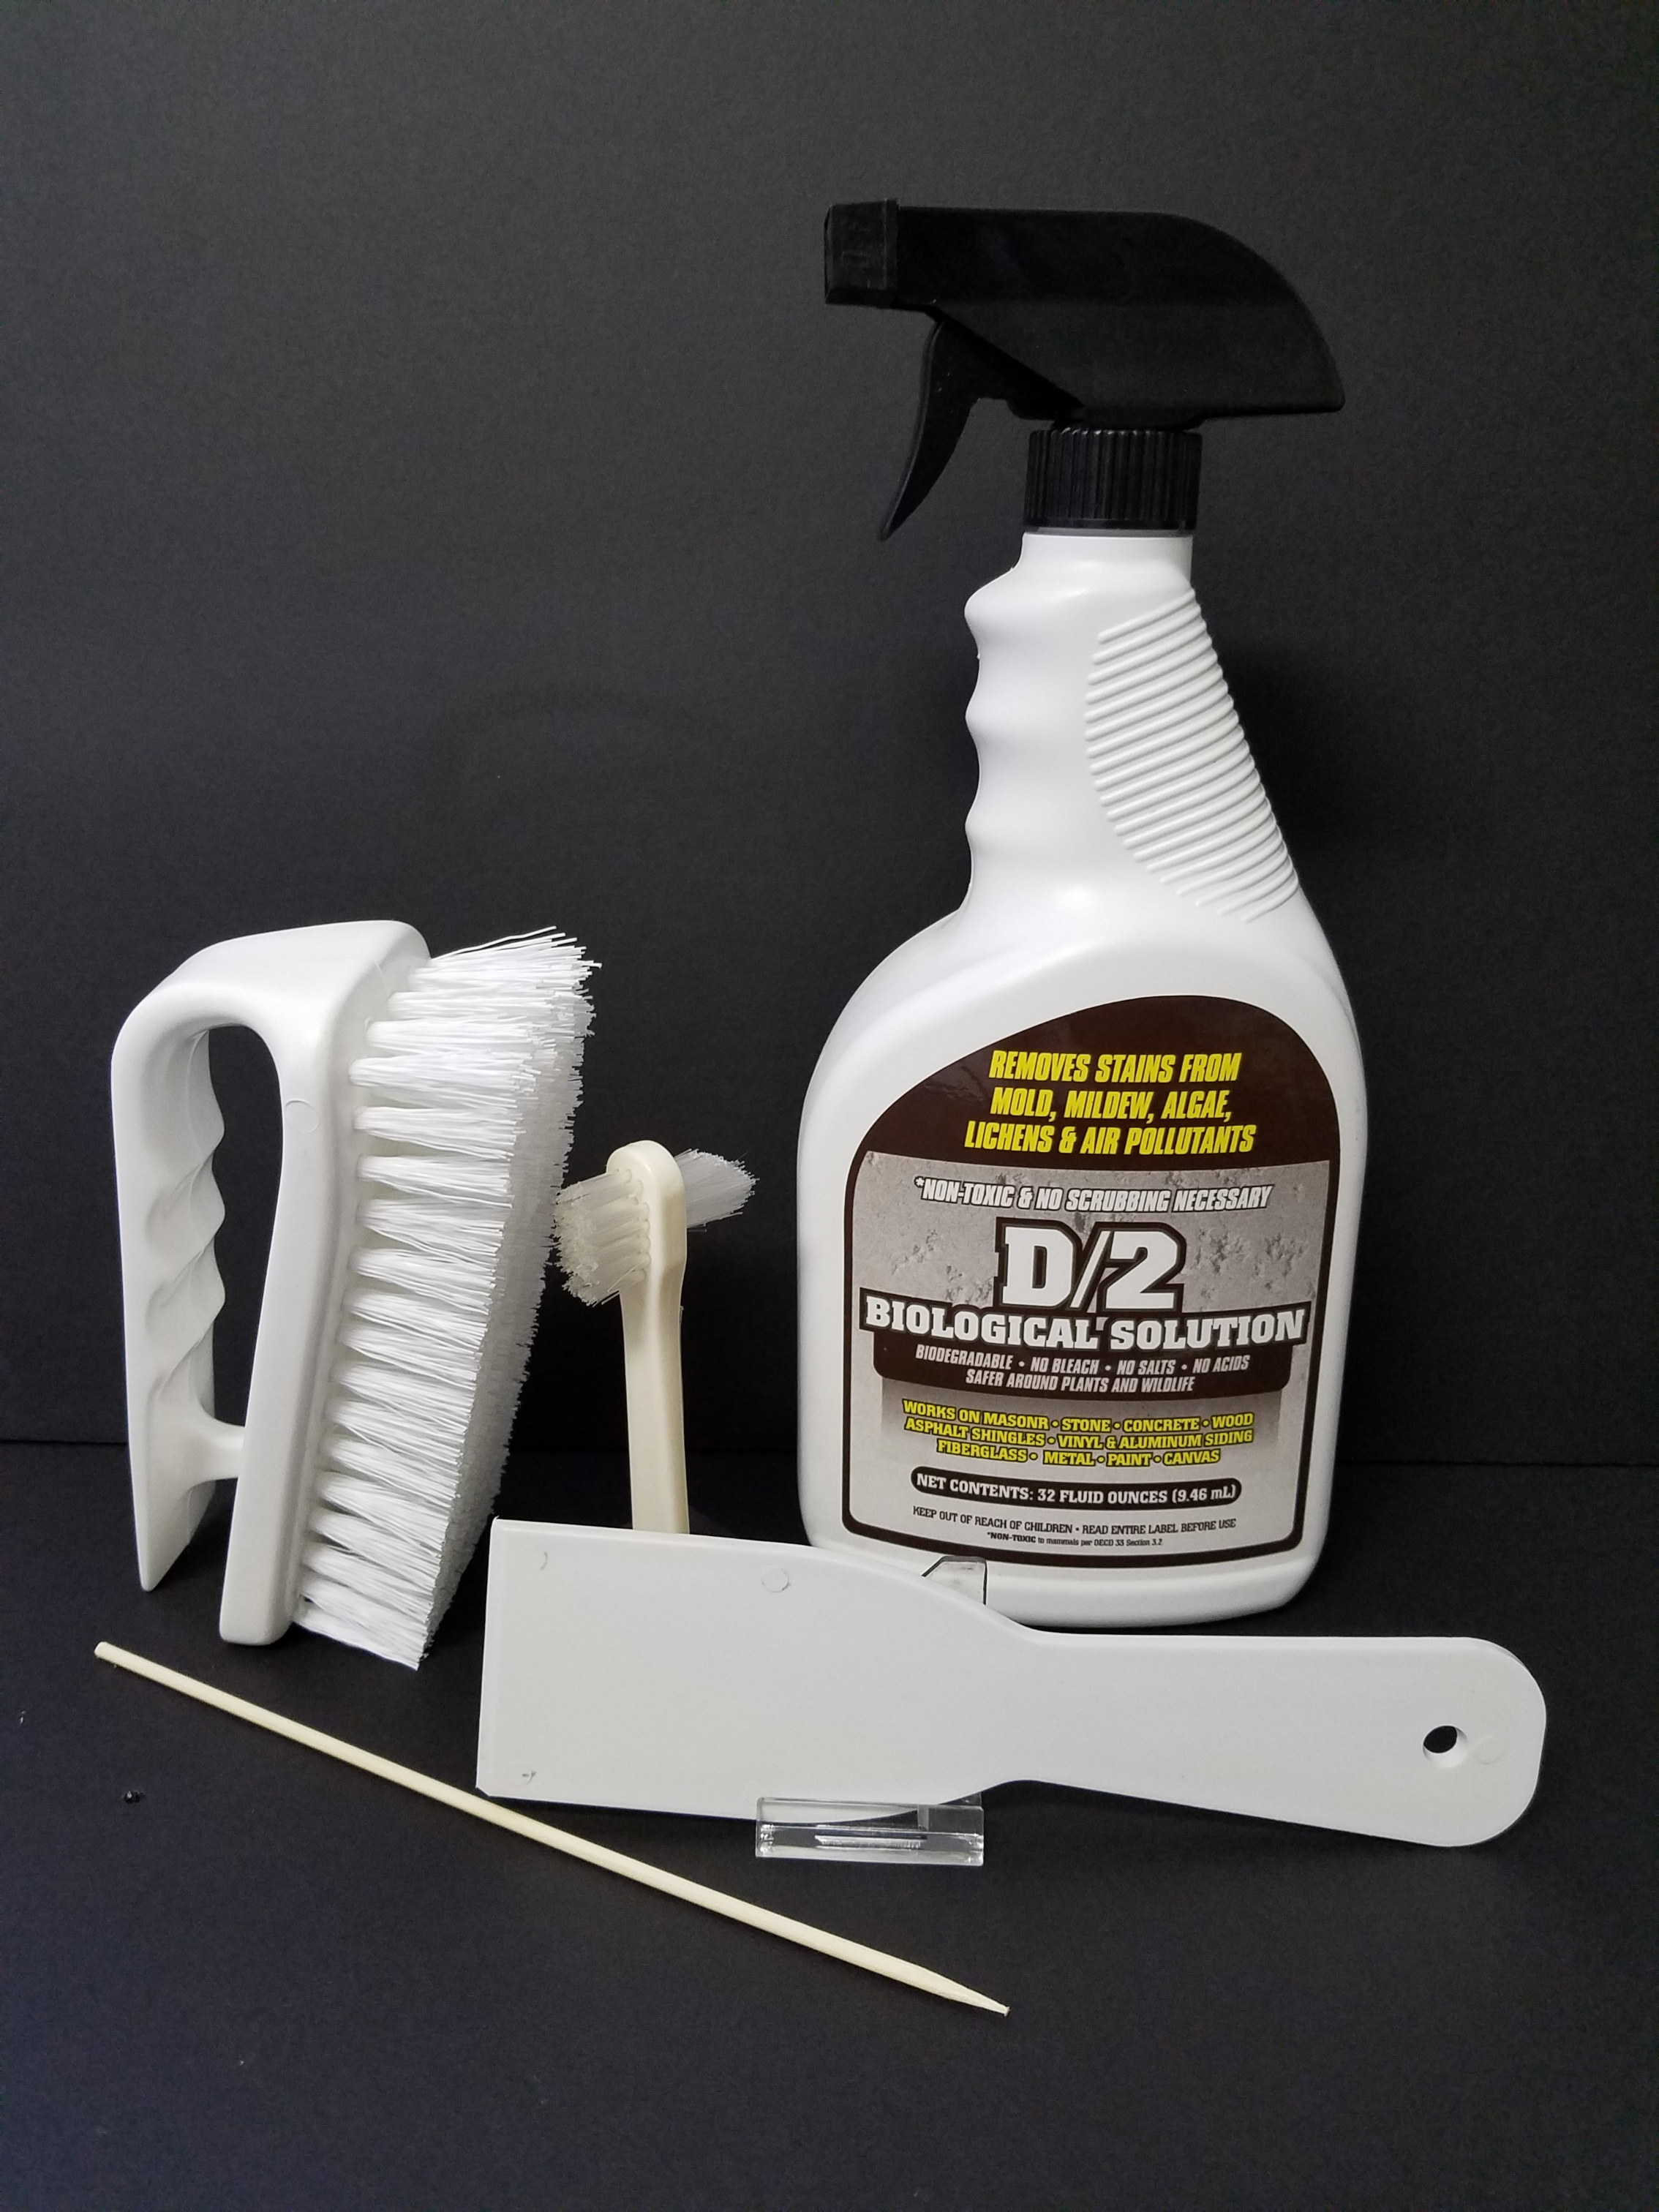 BillionGraves Headstone Cleaning Kit Small